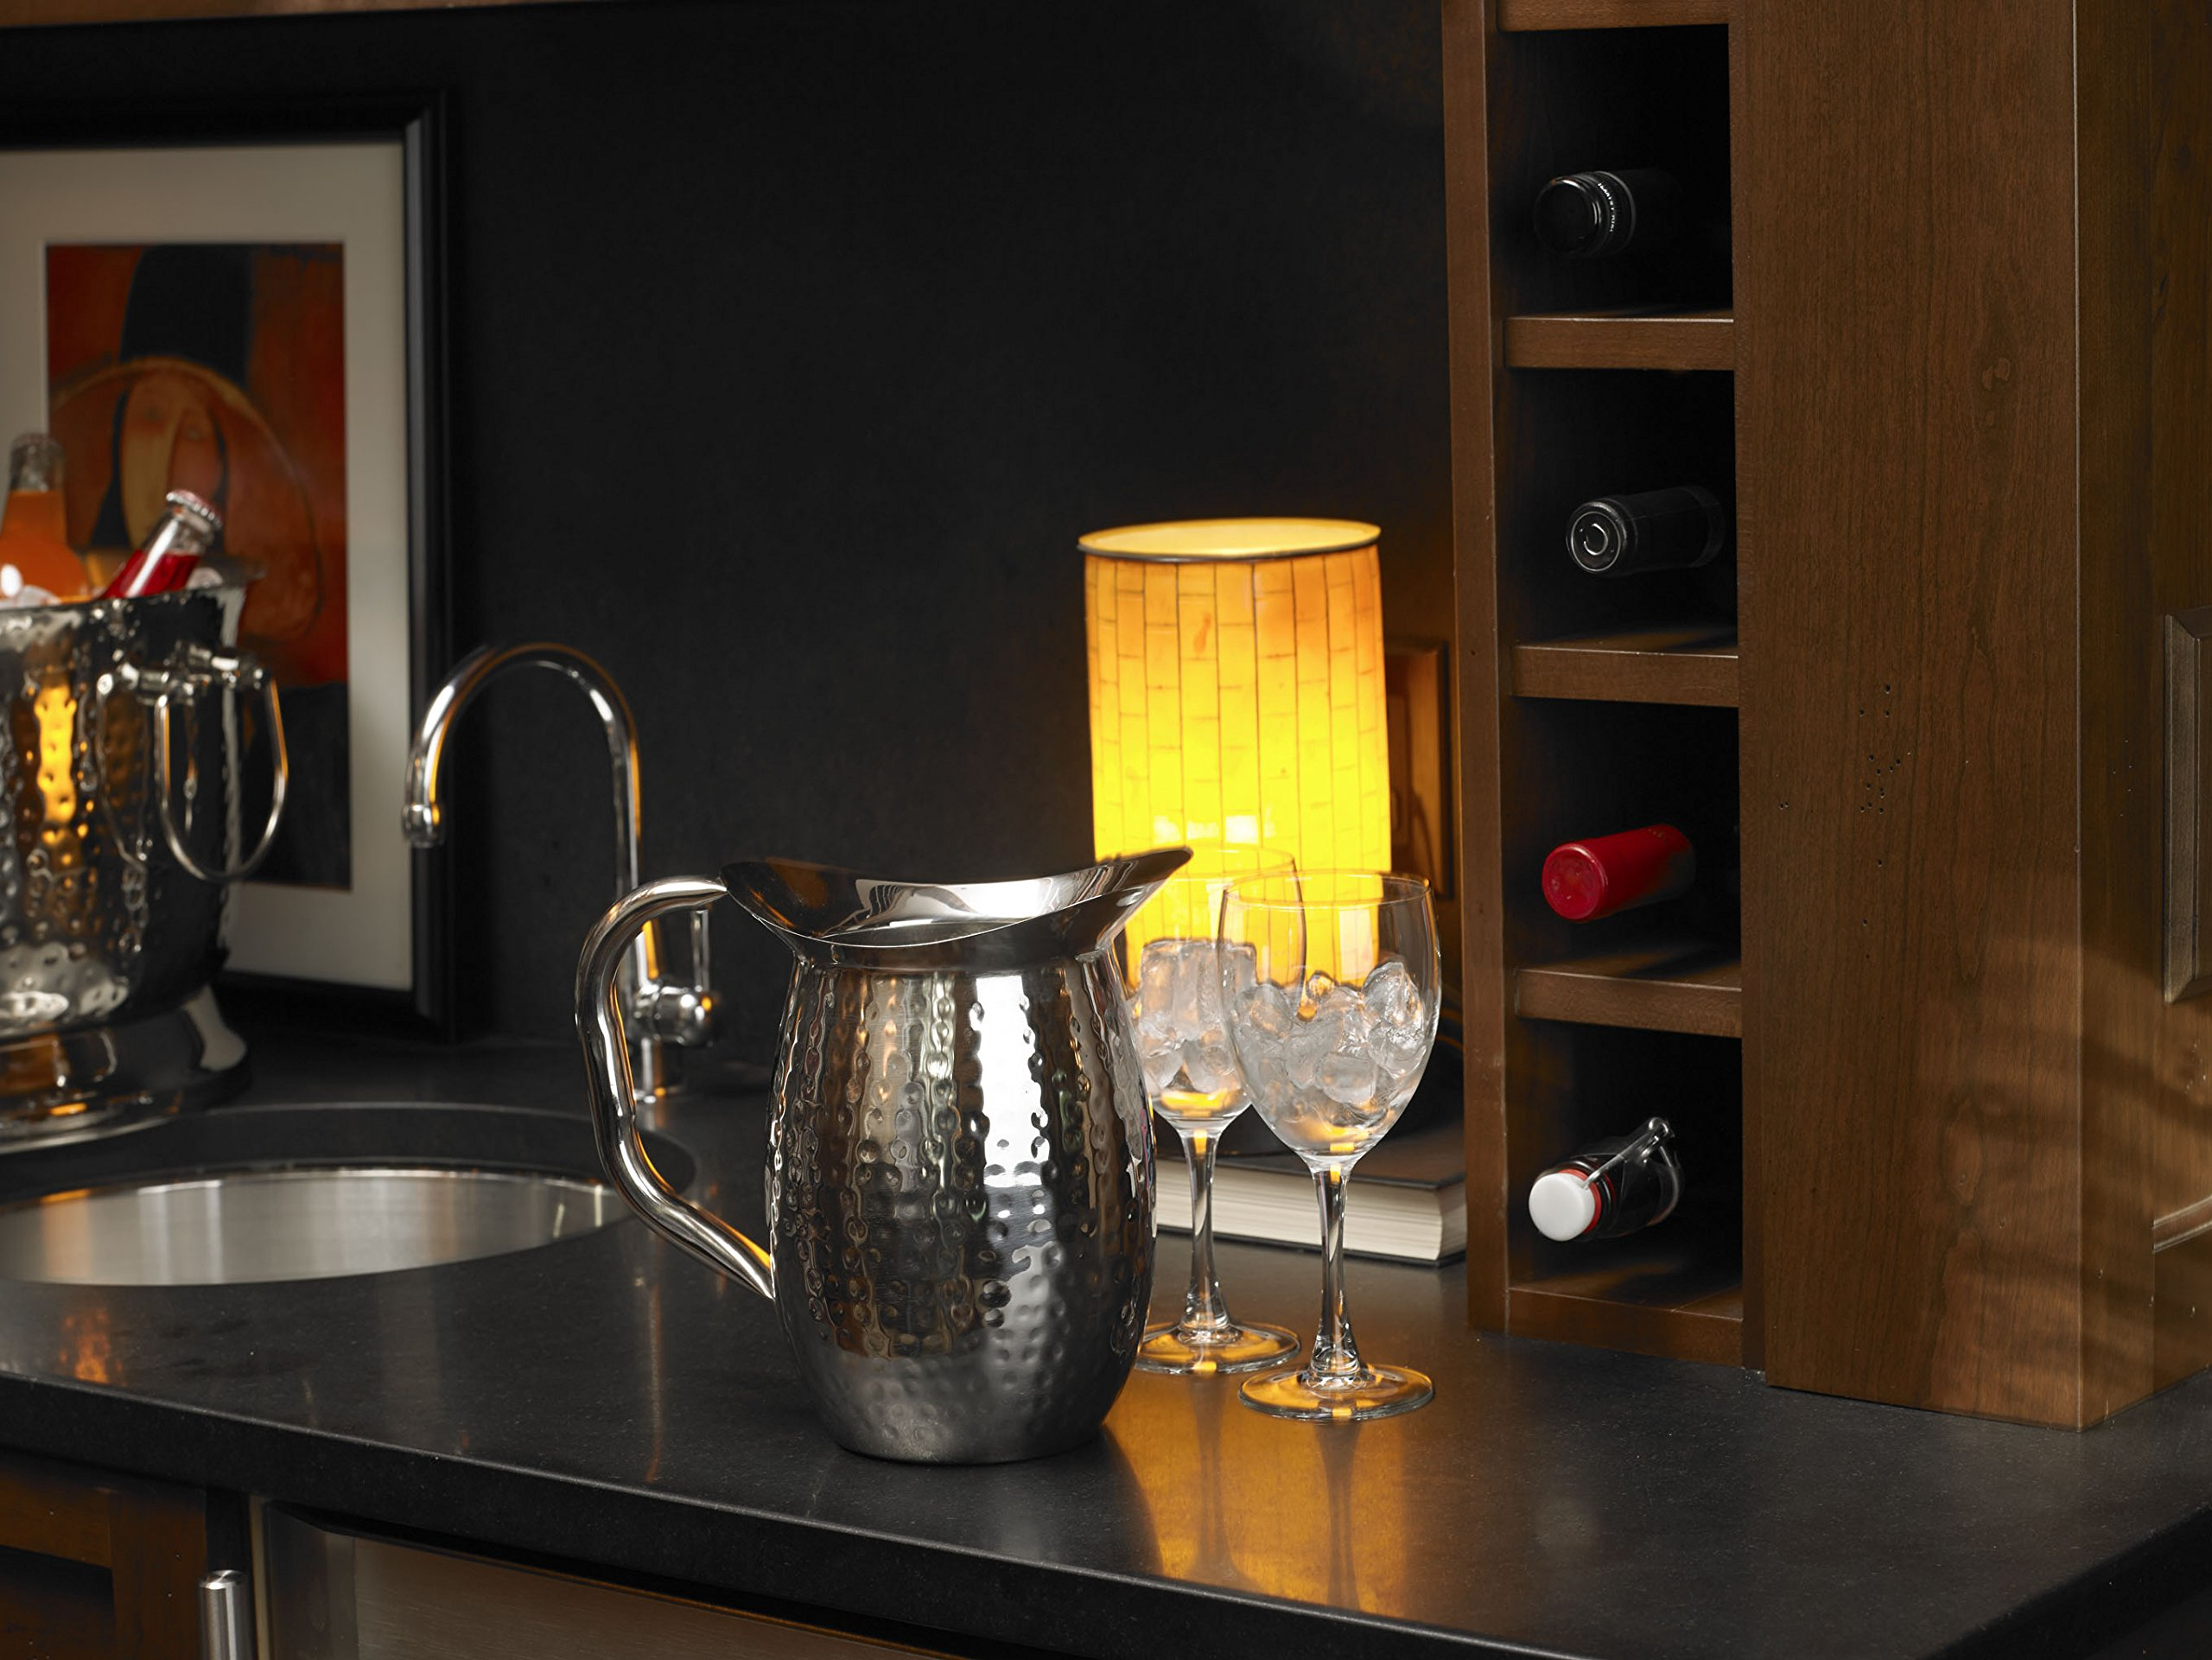 Artisan 2-Quart Double-Wall, Stainless Steel Insulated Serving Pitcher with Hammered Texture by Artisan (Image #6)